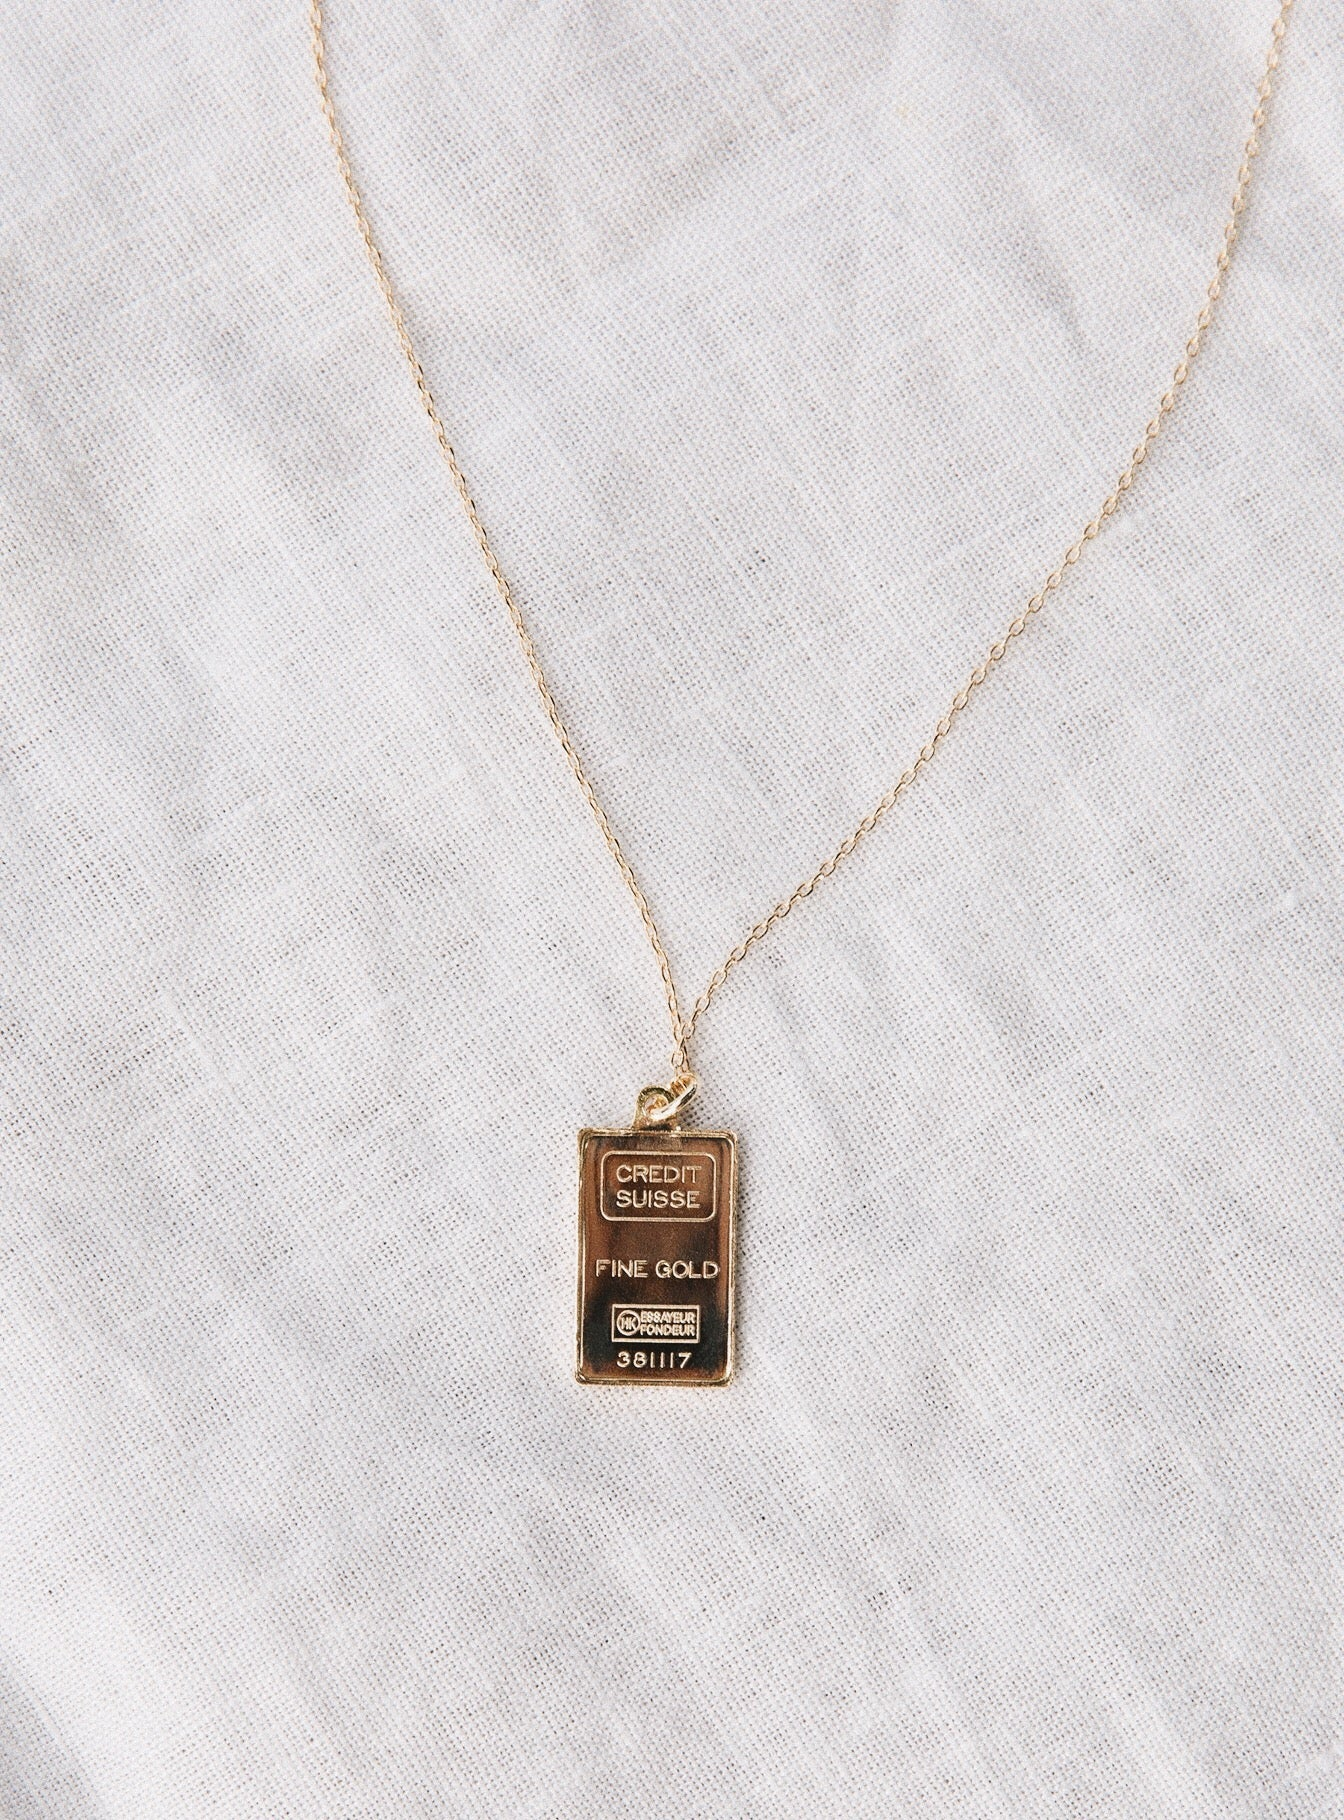 Jolie & Deen Gold Bar Necklace